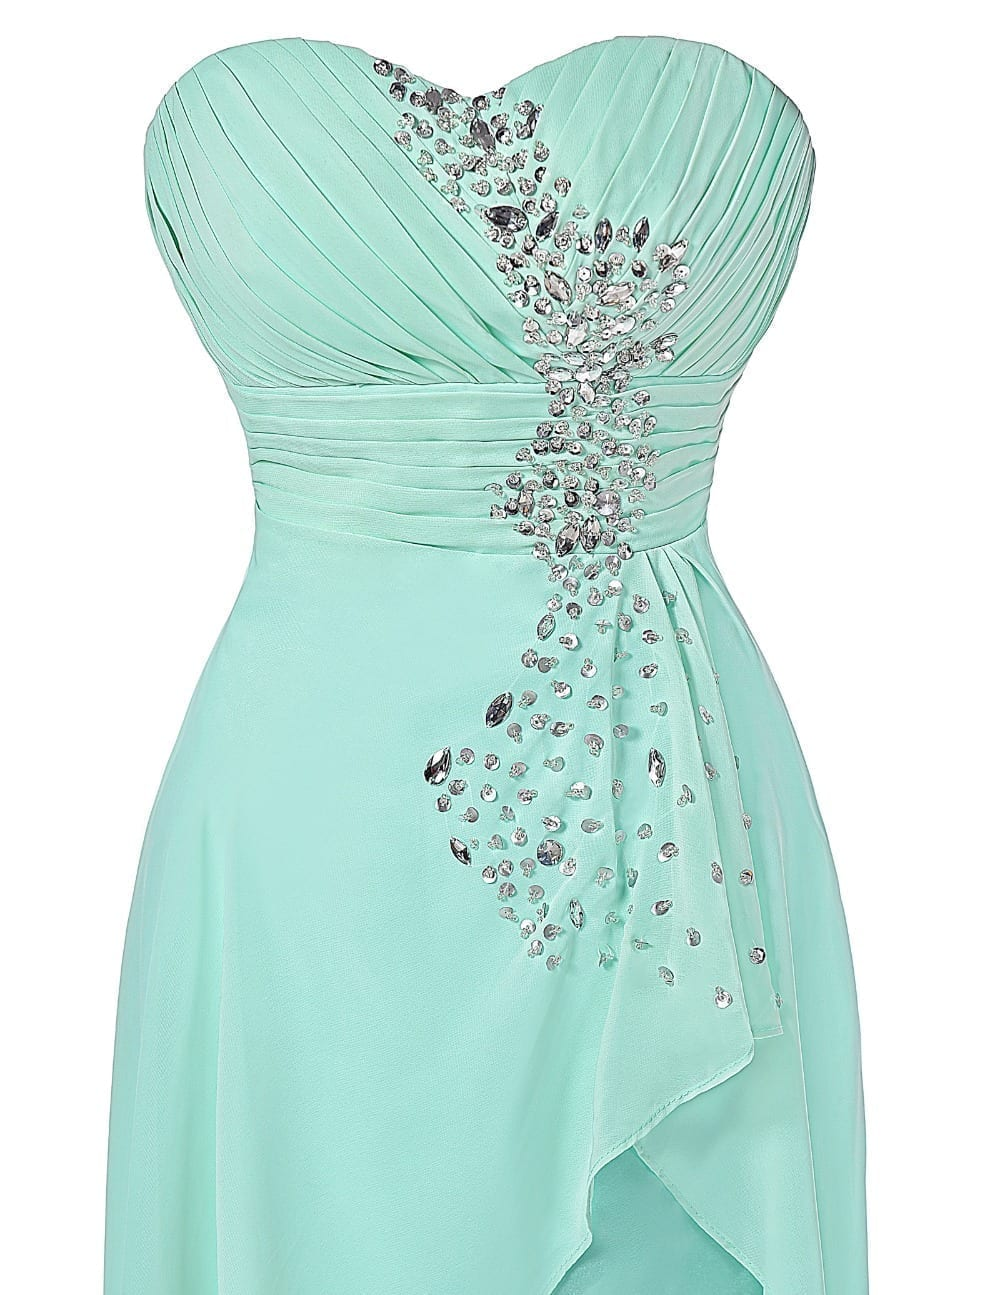 Turquoise Strapless Short Front Long Back Bridesmaid Dress